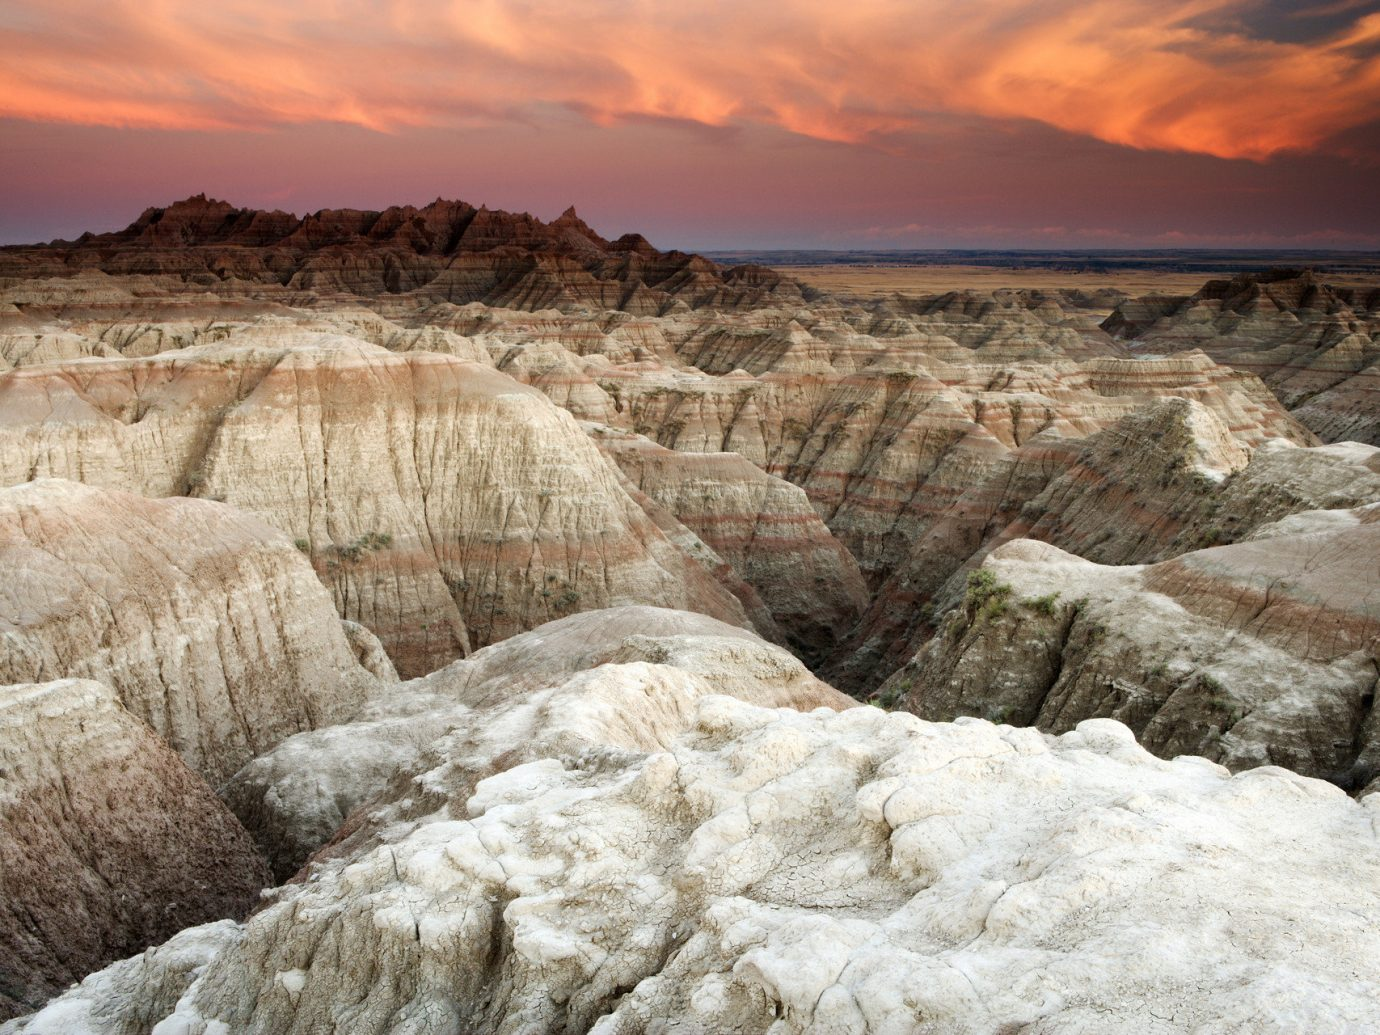 Road Trips Trip Ideas sky outdoor badlands valley Nature rock canyon Sea Coast cliff wadi geology landscape terrain plateau formation sand